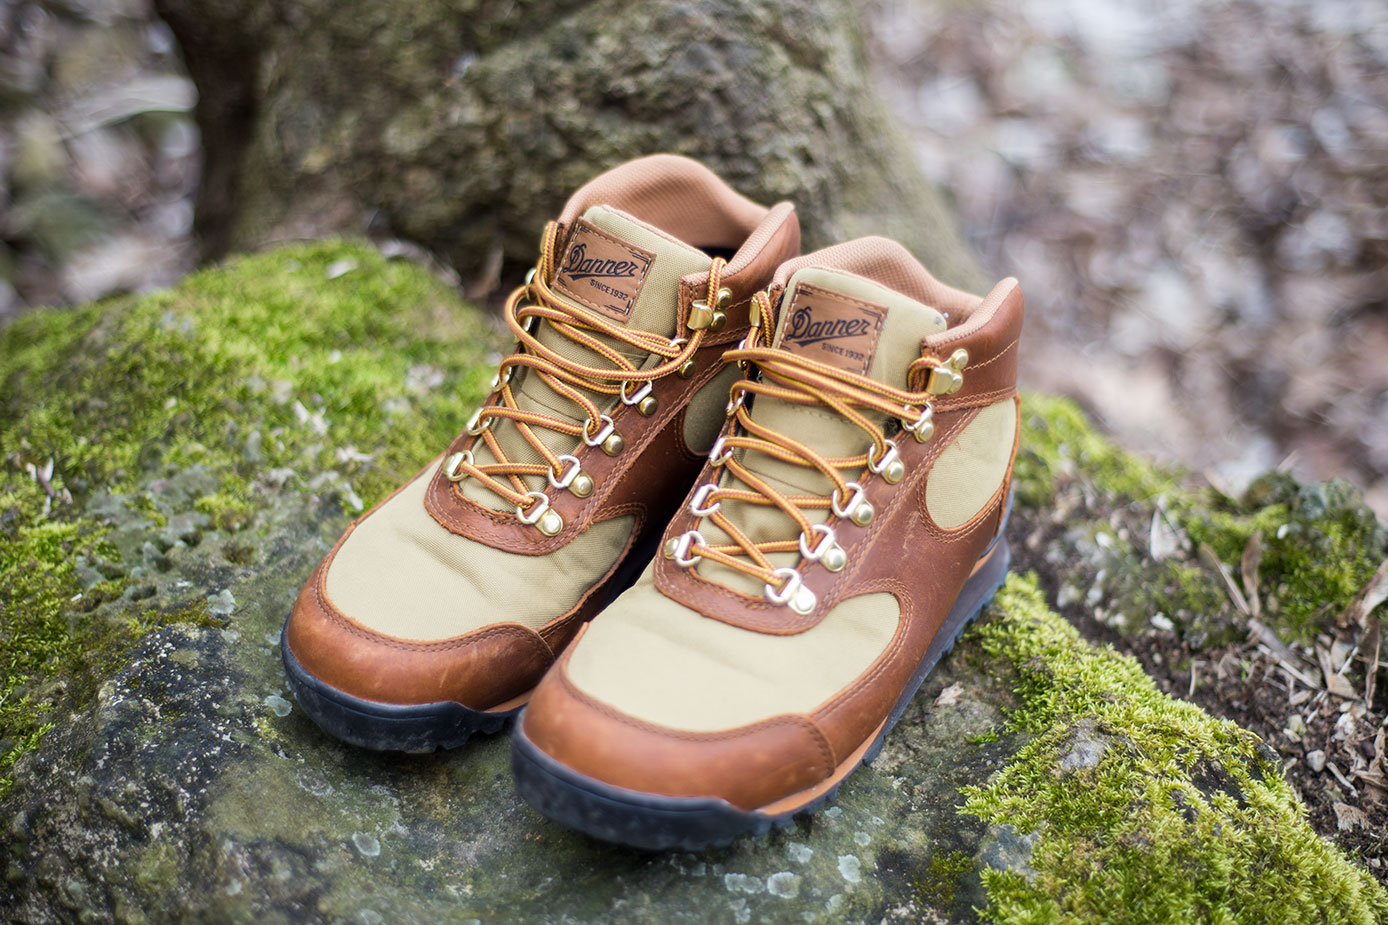 Vasque Retro Boots 80s Light Hiker Reinvigorated Jag Boot Review Gearjunkie